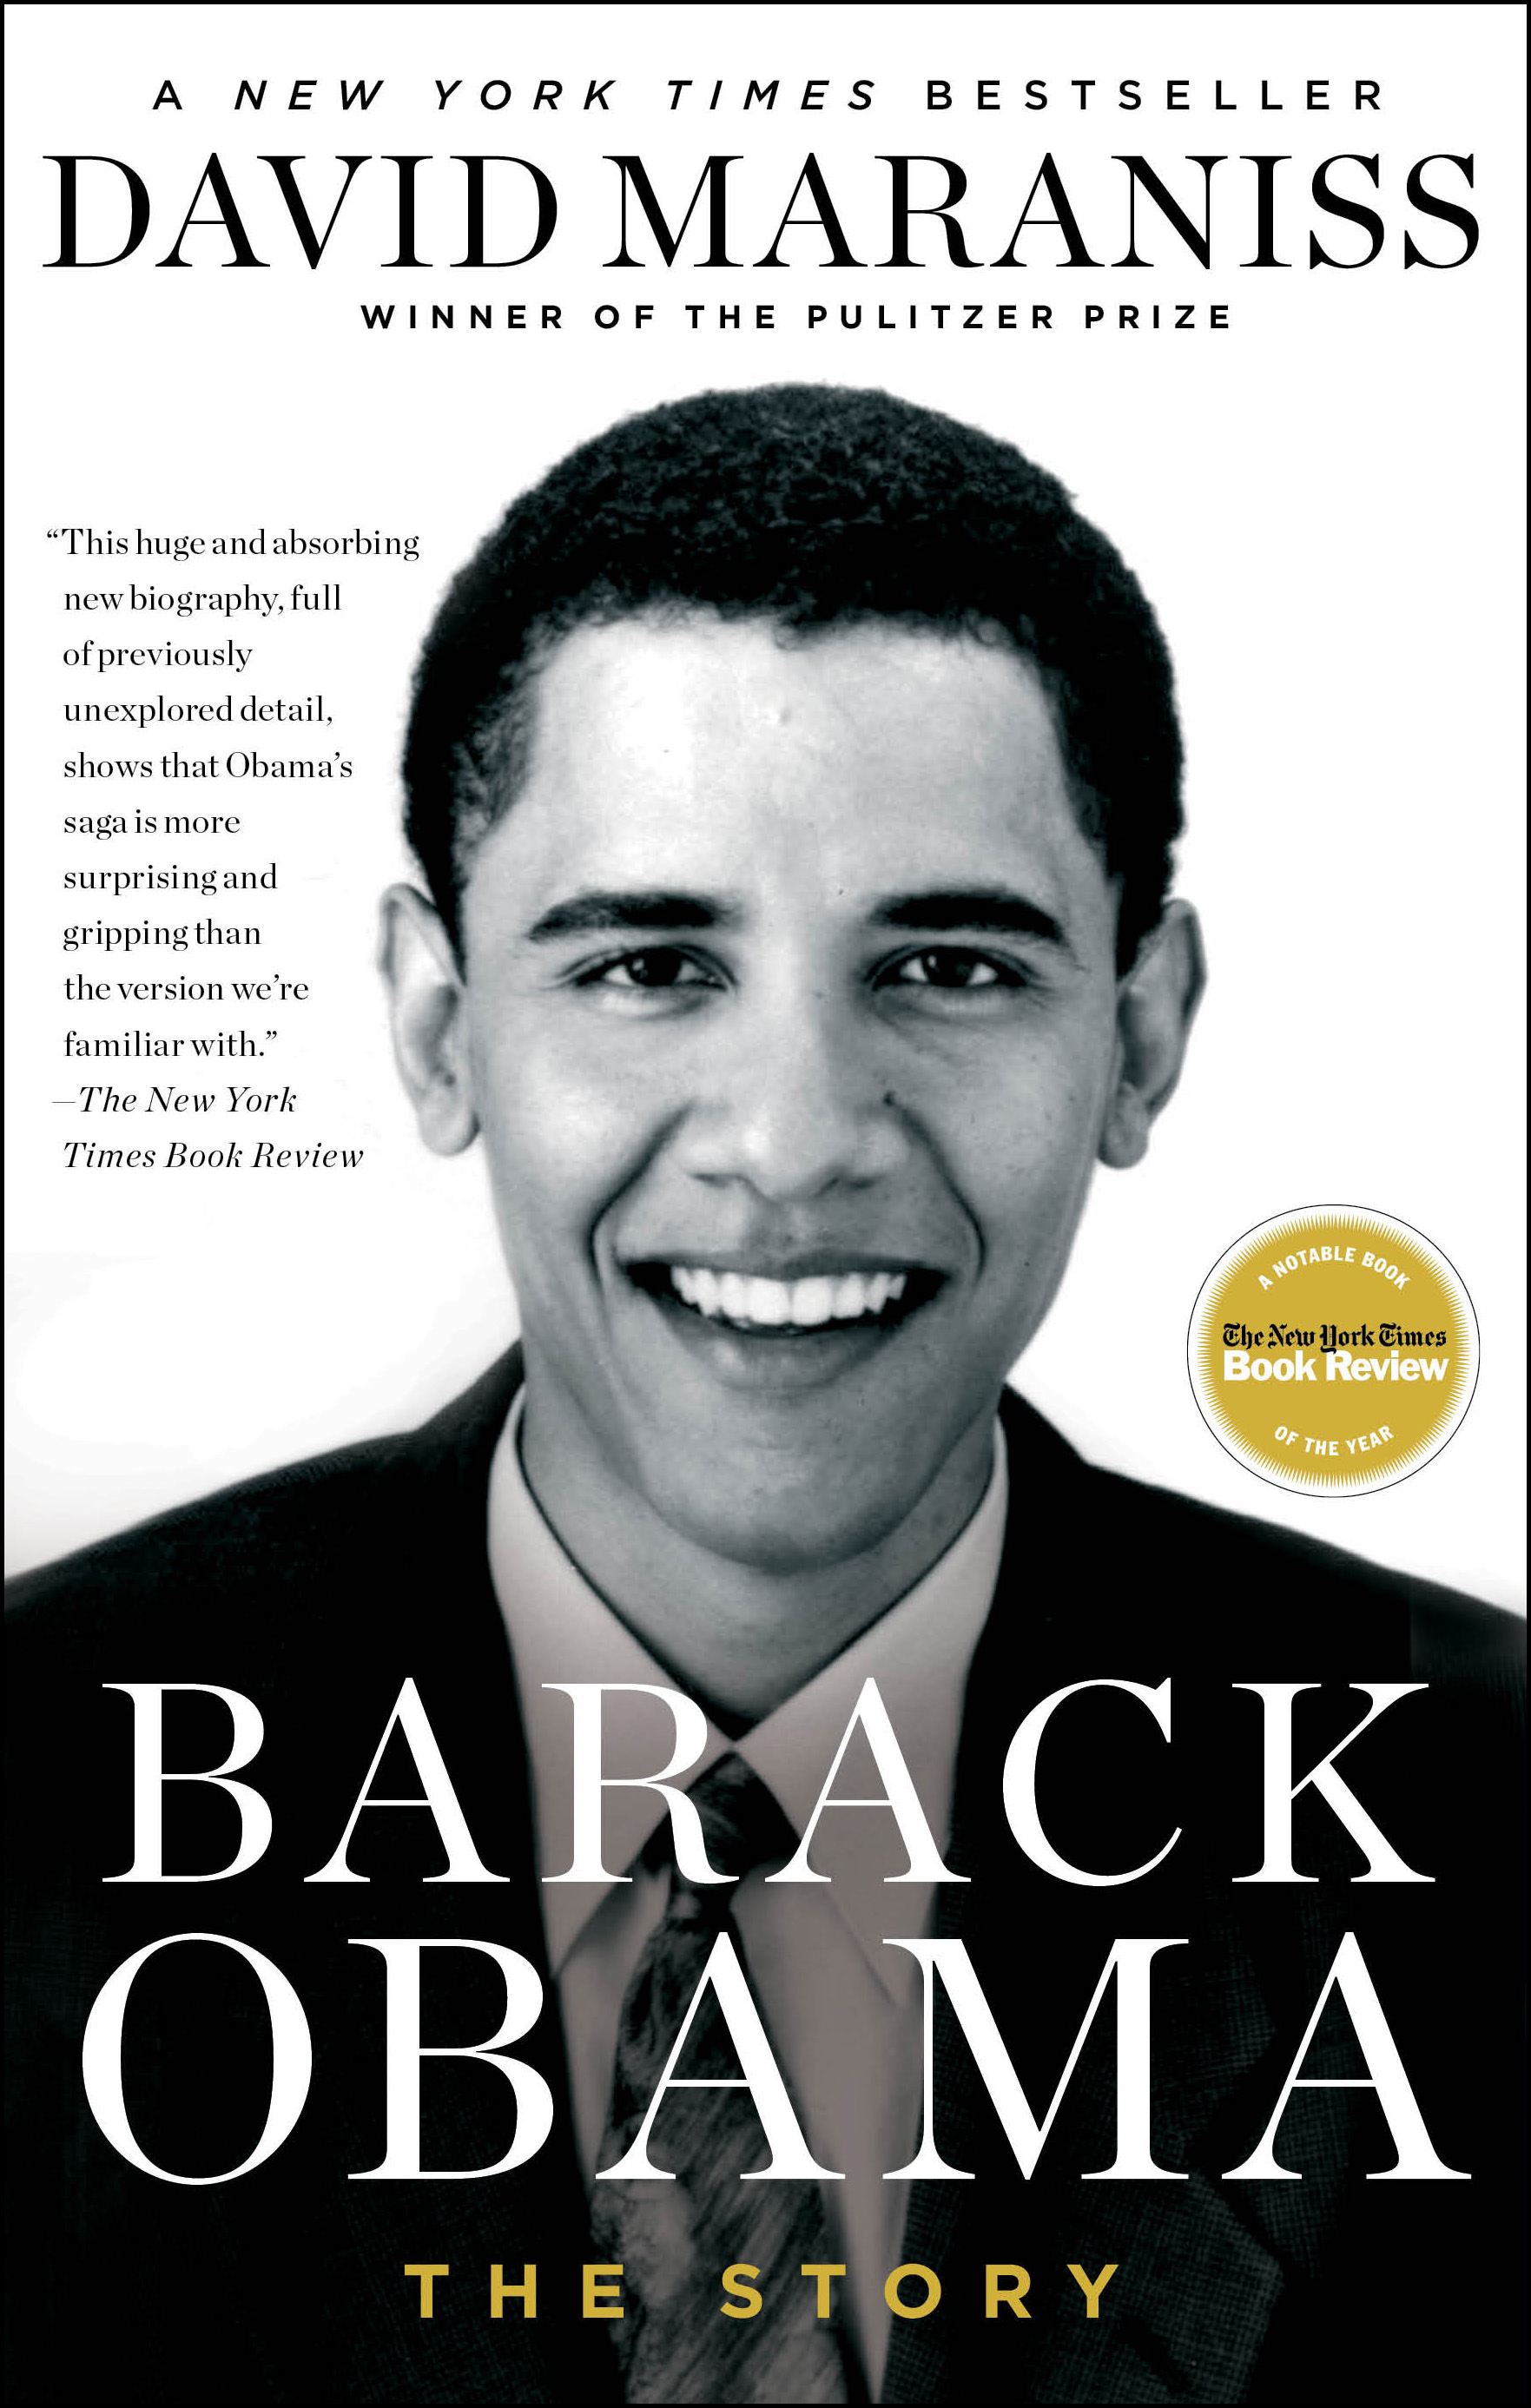 barack obama biography 4 days ago  read barack obama fast facts from cnn to learn more about the 44th president  of the united states.